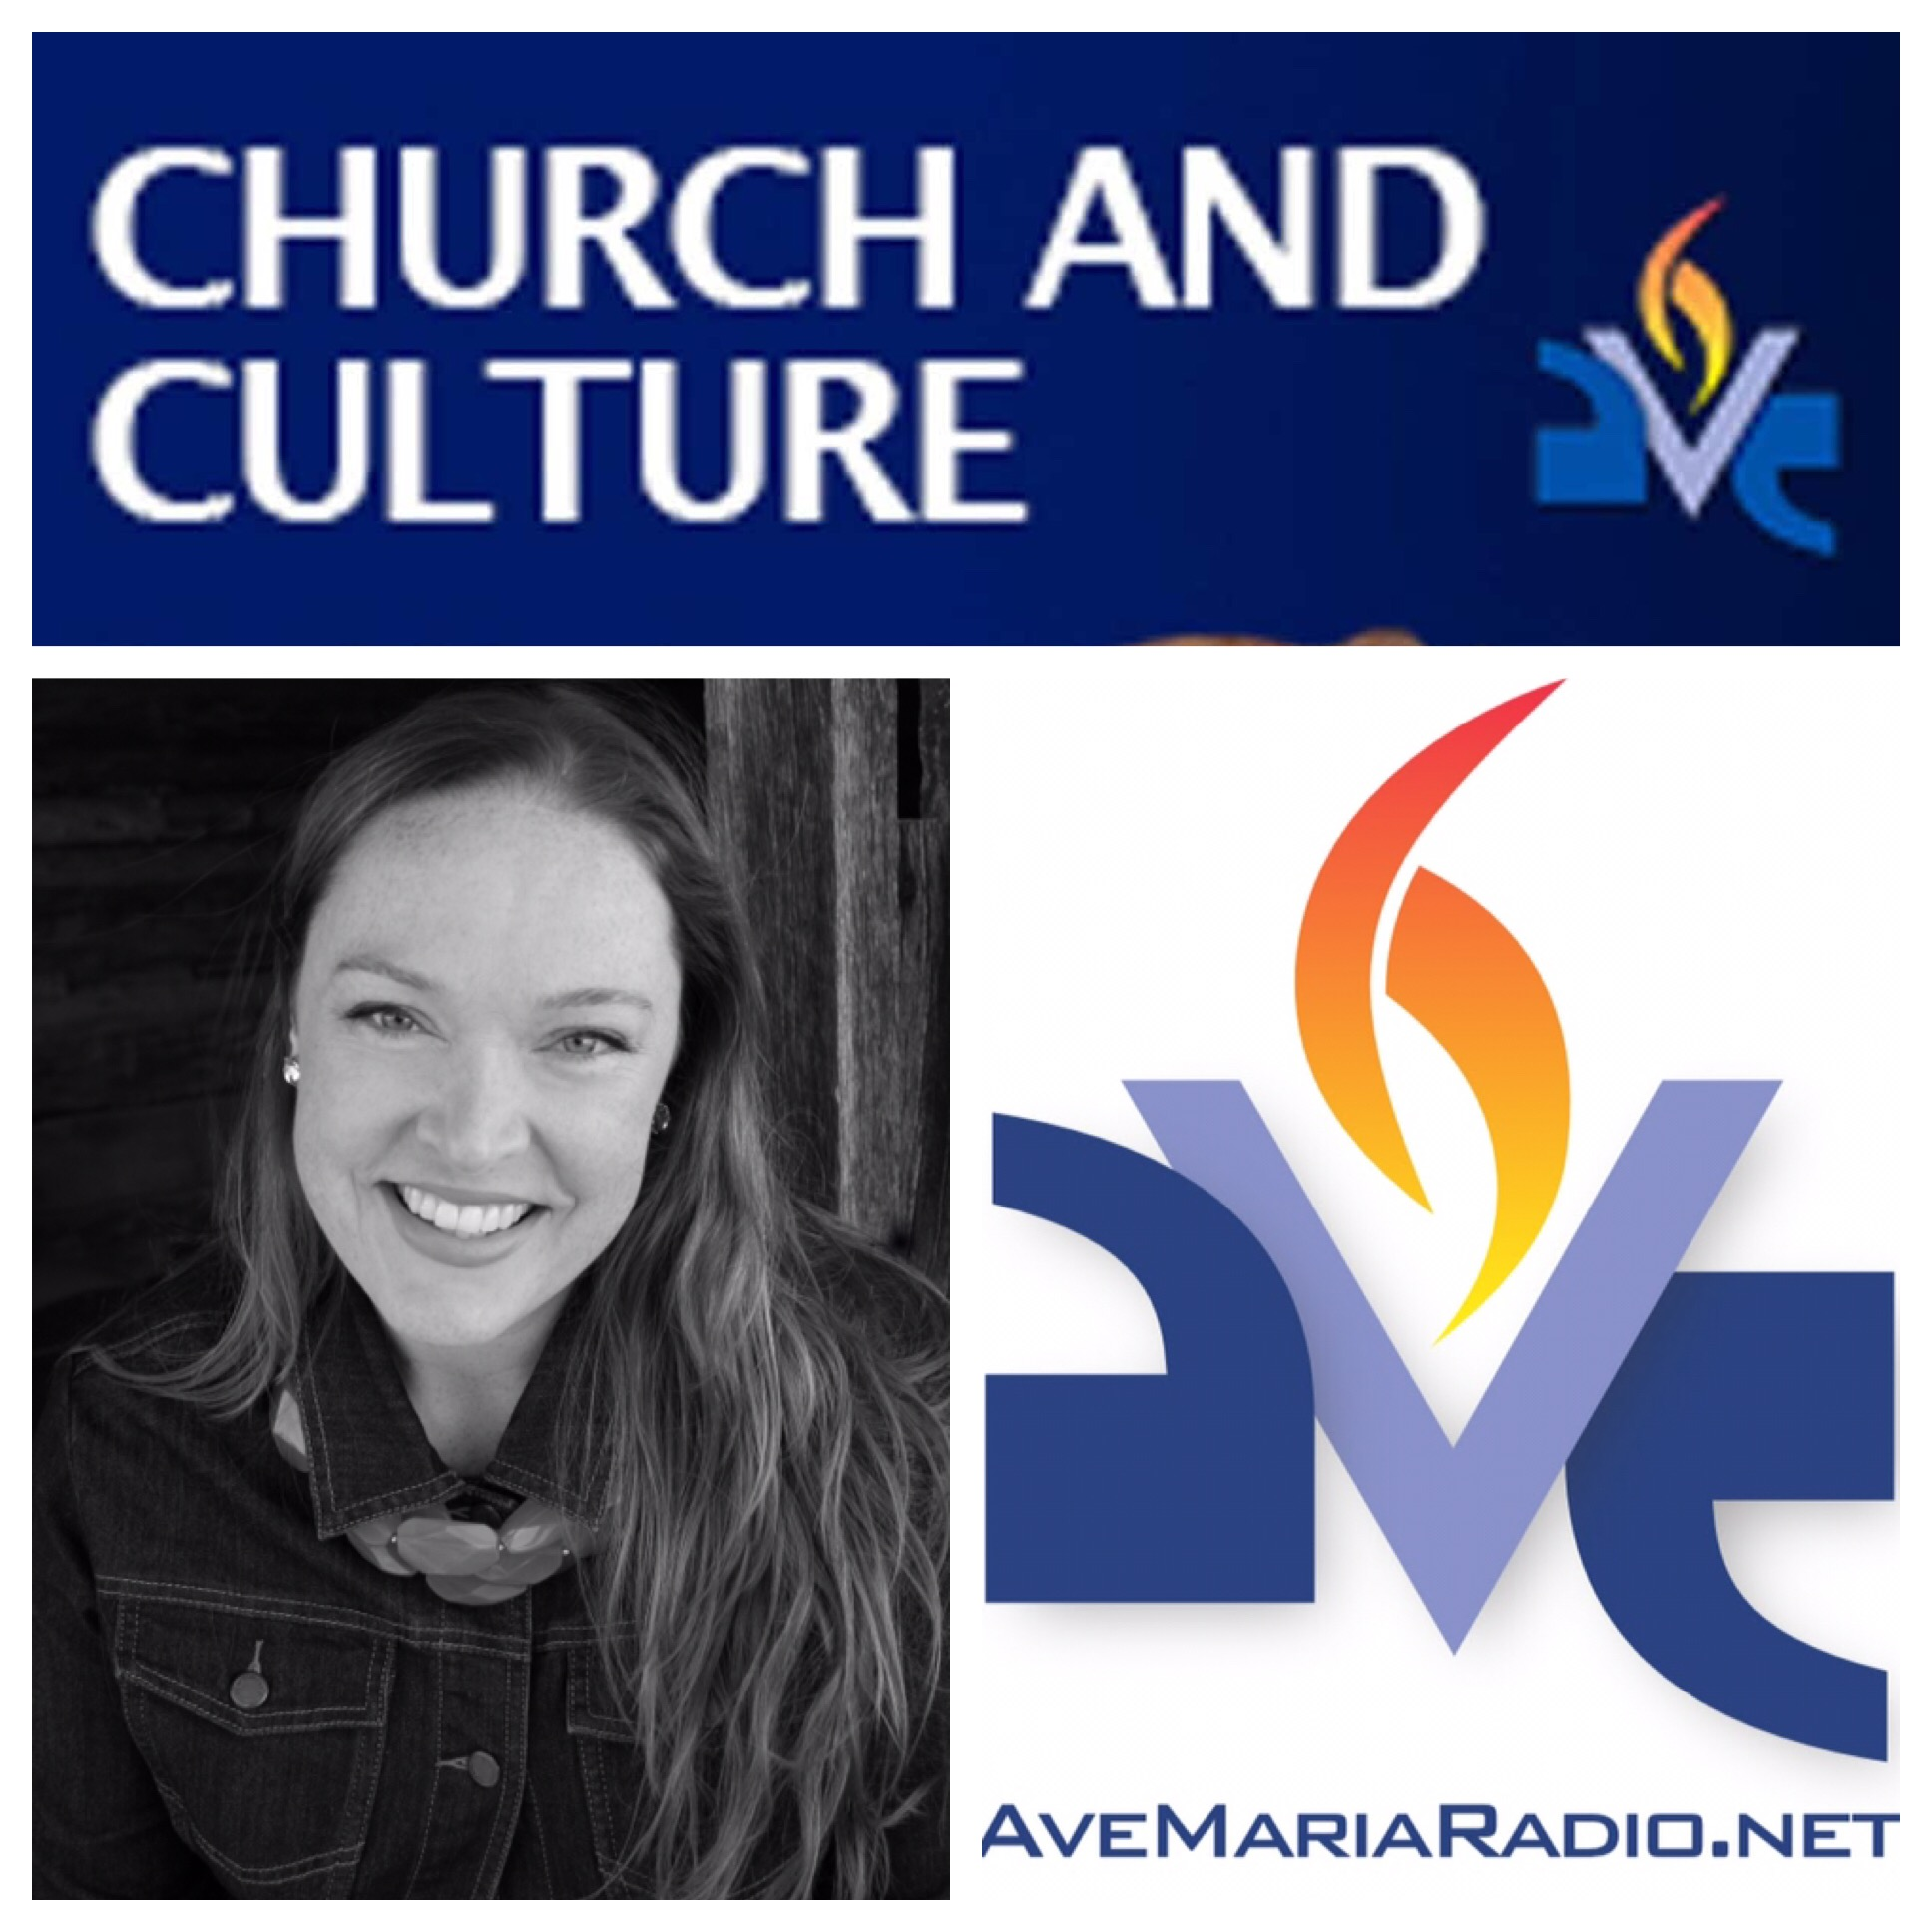 Church and Culture with Deal Hudson - Painter Ali Cavanaugh talks modern fresco paintings, her new book on her art since 2007LISTEN